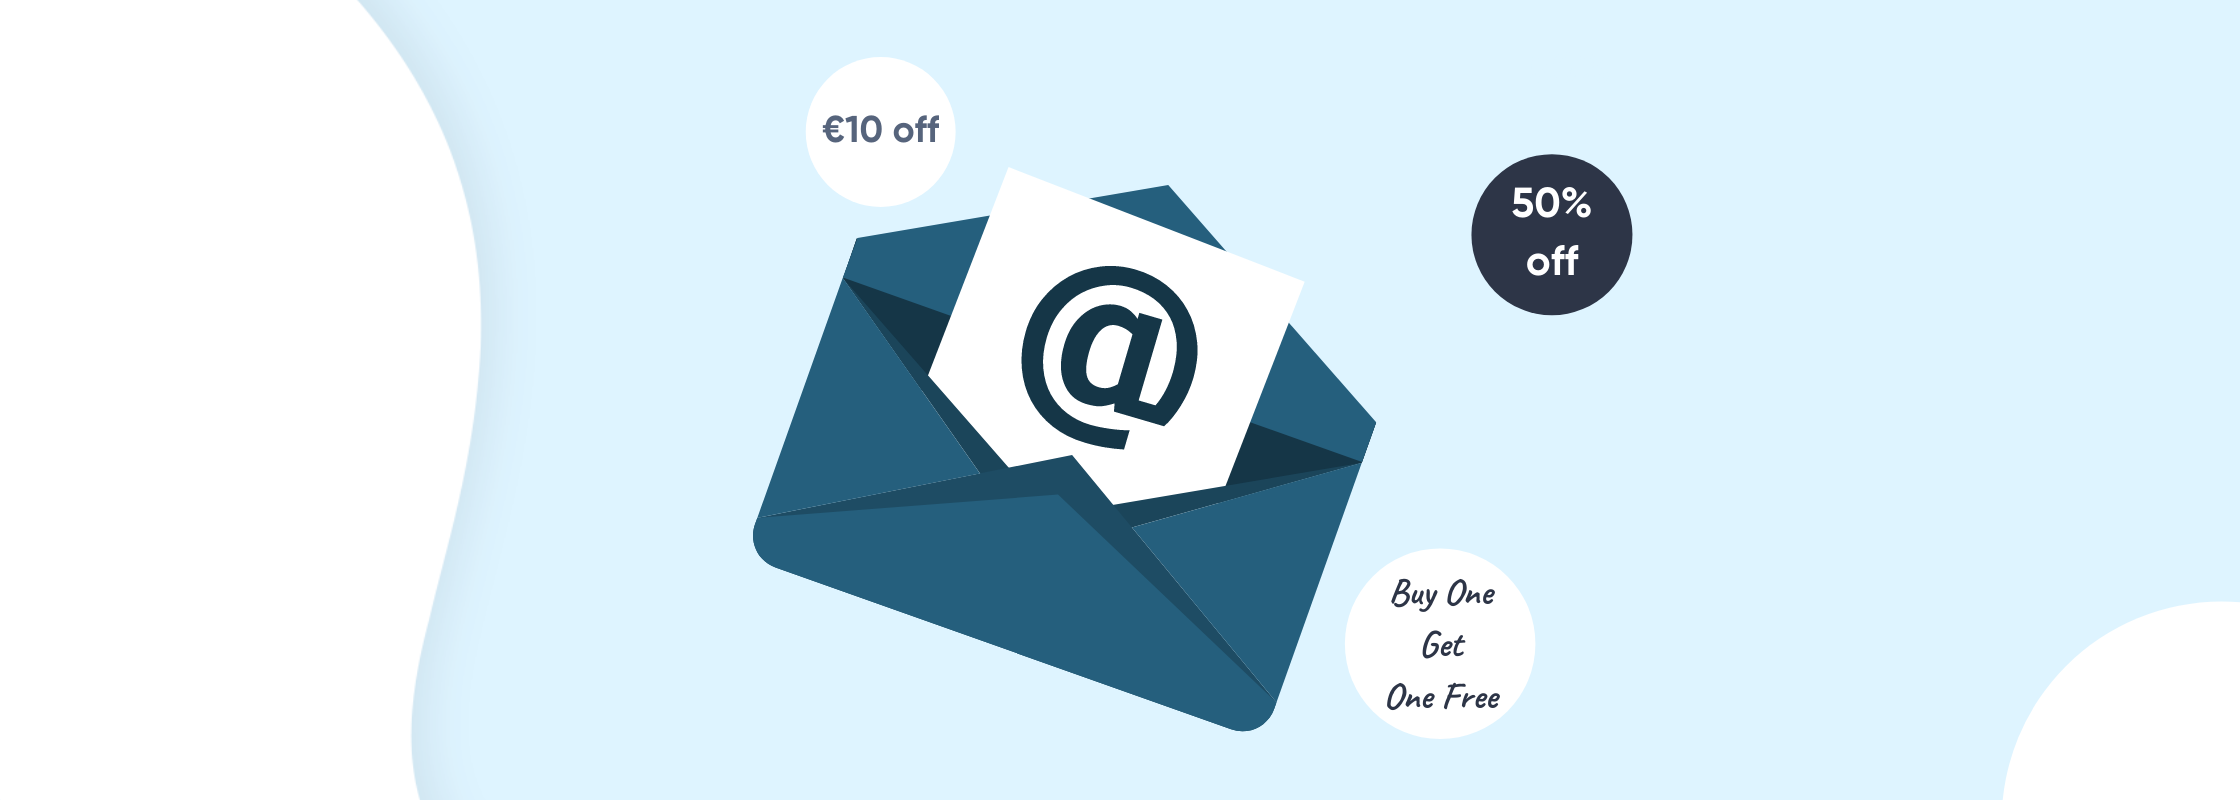 Vouchers in Email